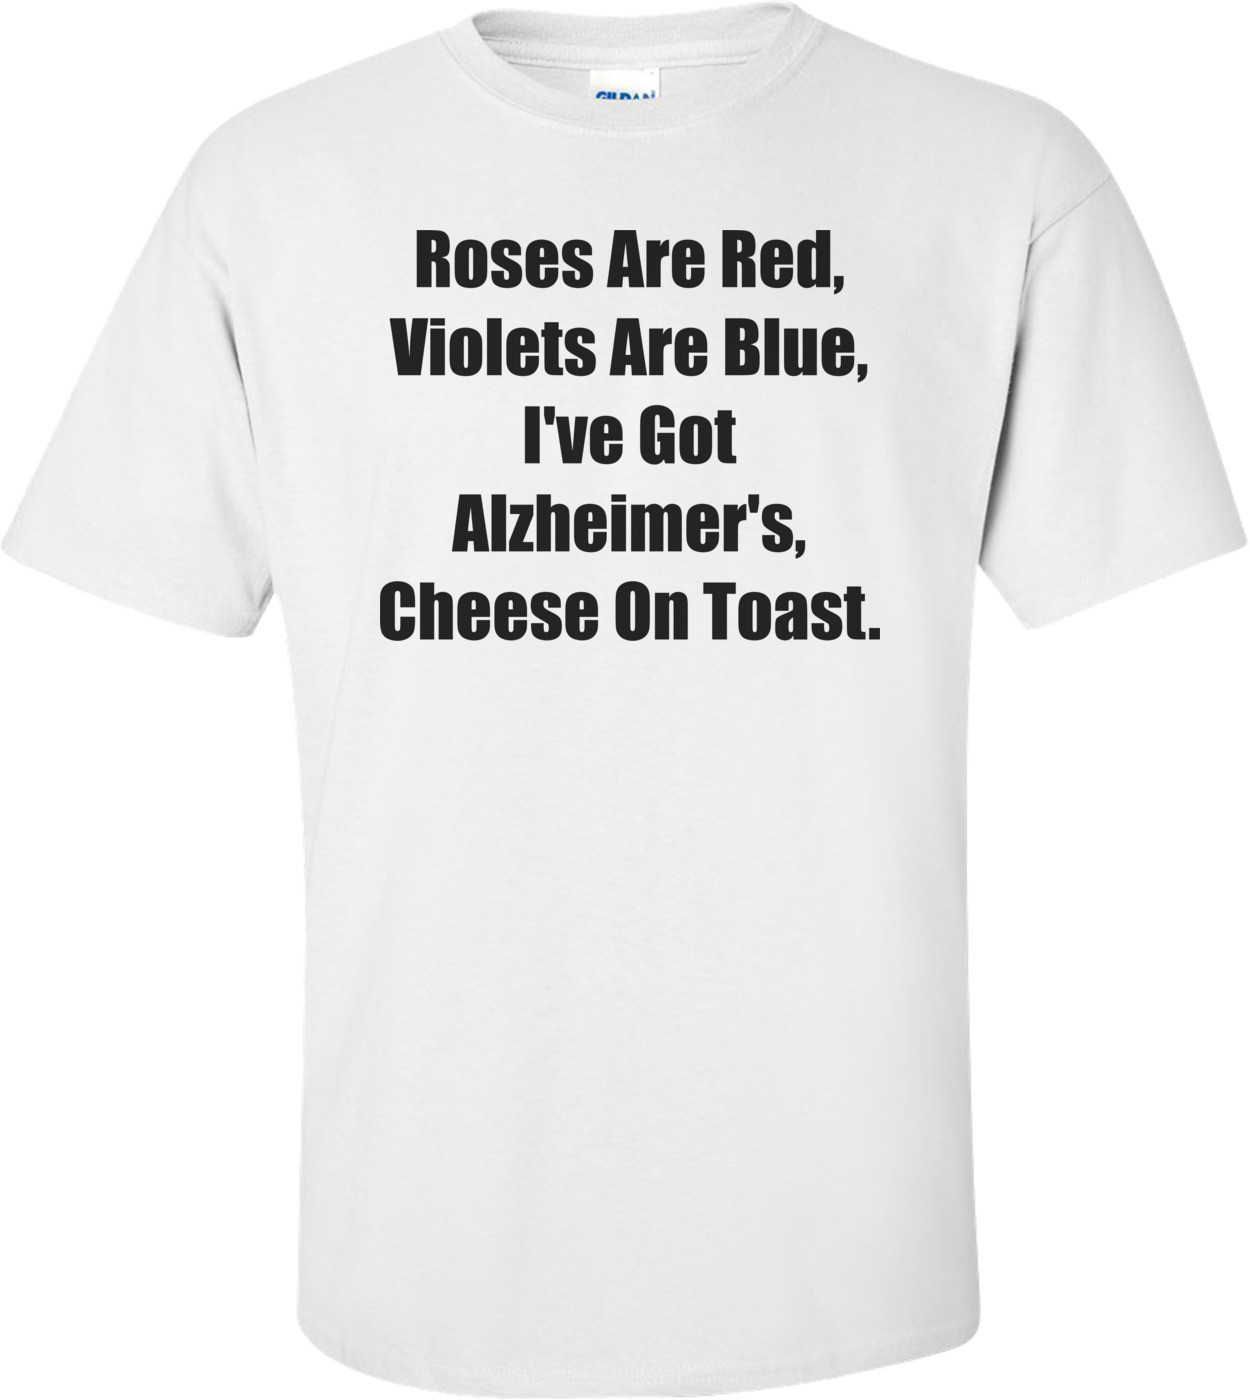 Roses Are Red, Violets Are Blue, I've Got Alzheimer's, Cheese On Toast. Shirt